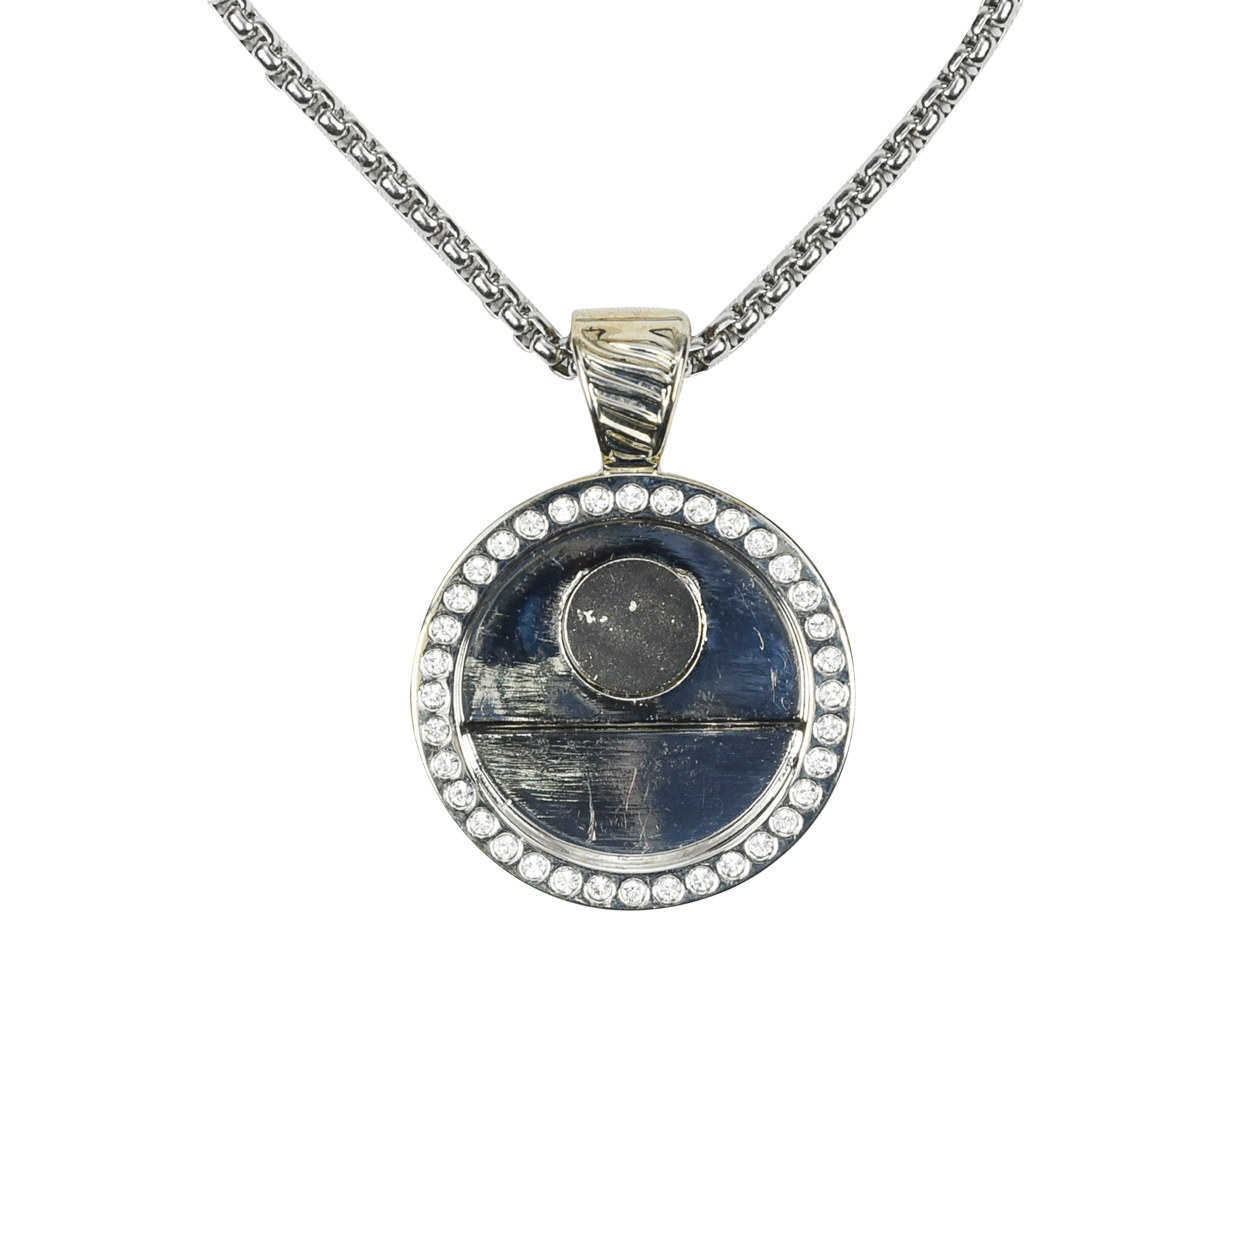 243. Swarovski Crystal Necklace